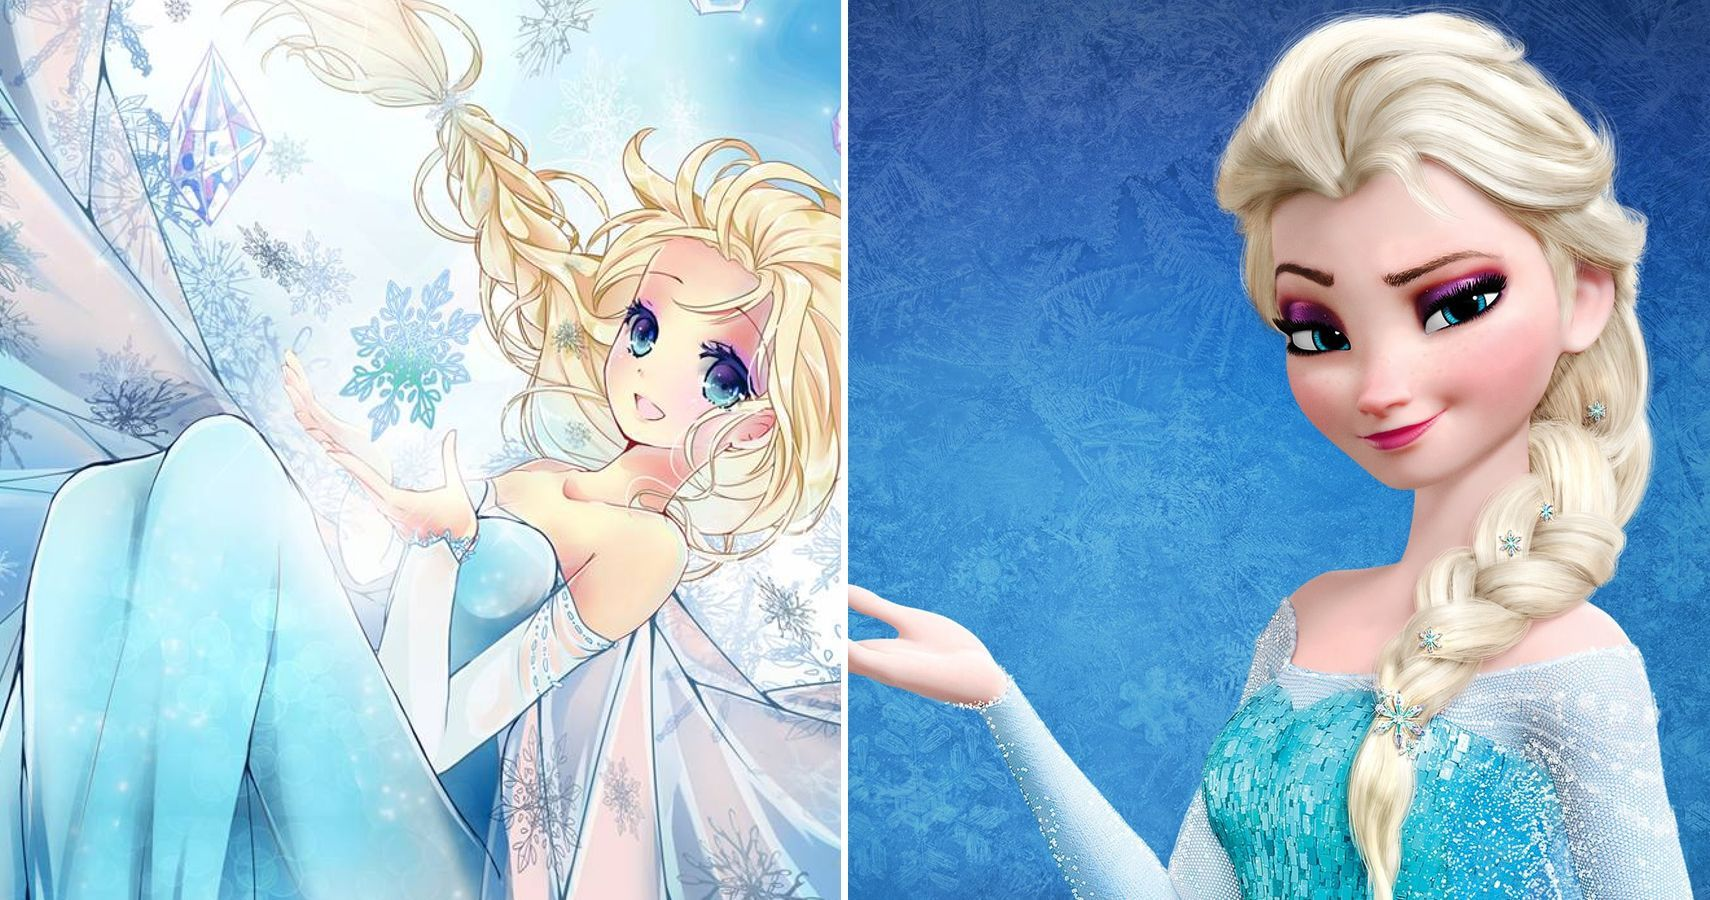 10 Disney Princesses Reimagined As Anime Characters in